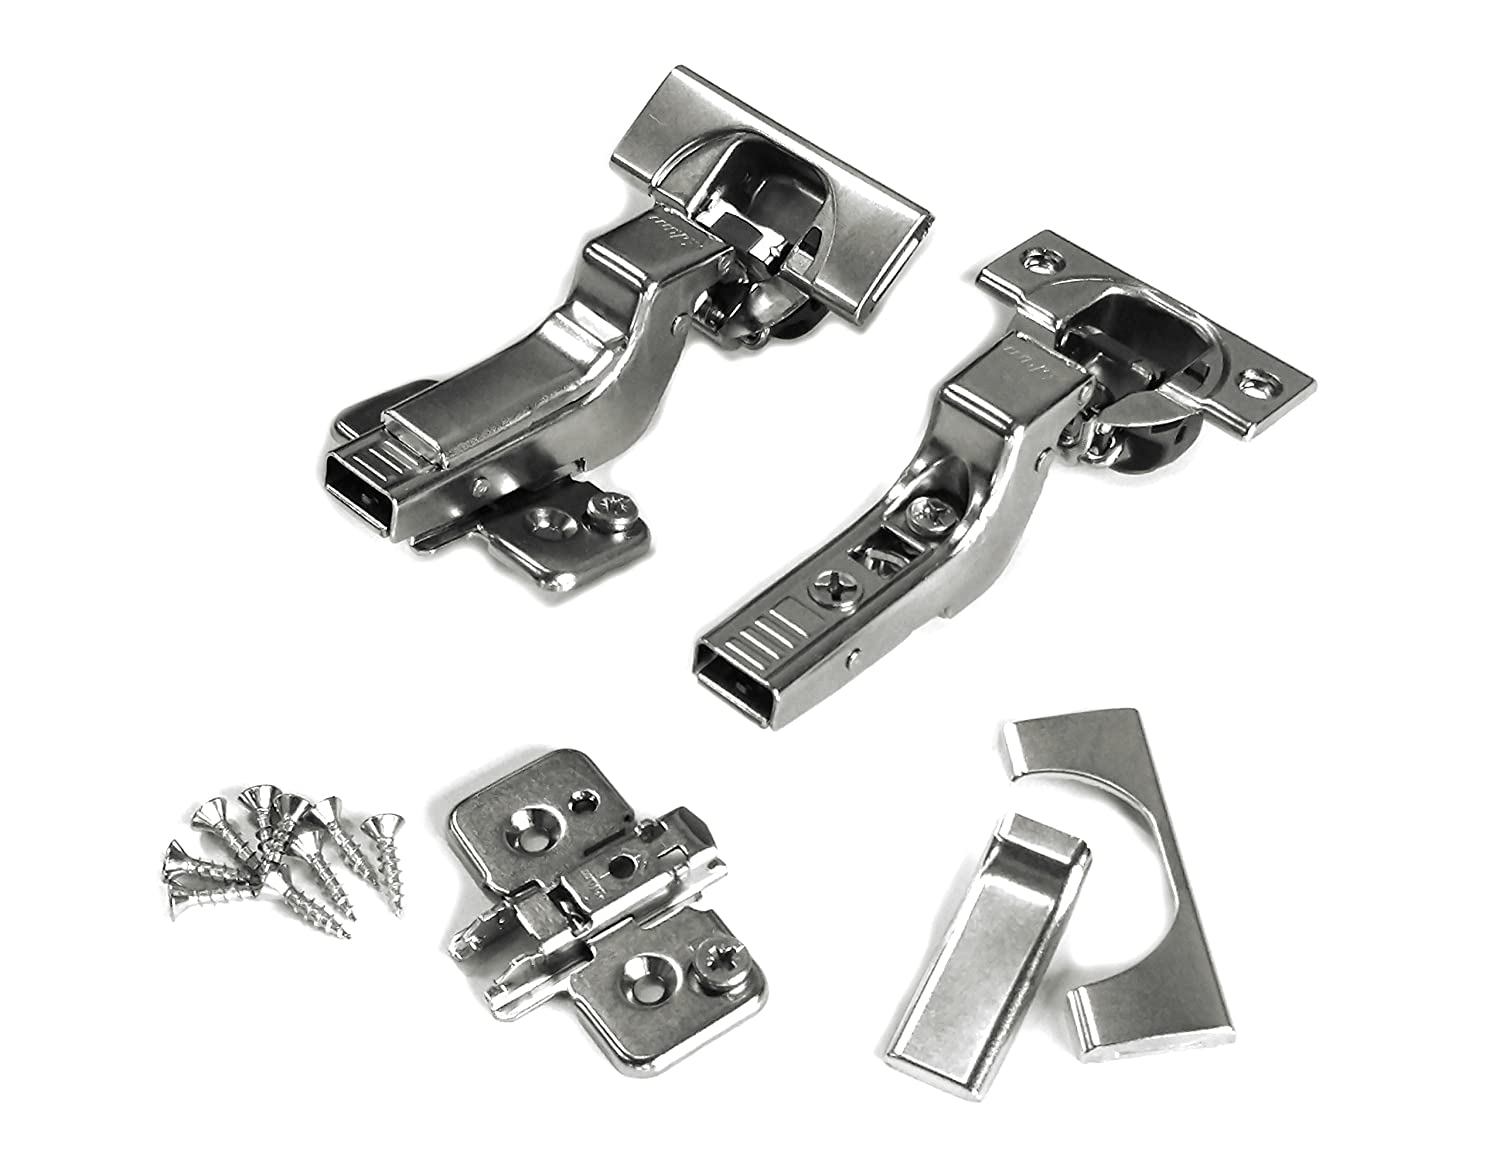 Blum CLIP top BLUMOTION Soft Close Hinges, 110 degree, Self Closing, Frameless, with Mounting Plates and hinge cover plates (Inset - 8 Pack (4 pair))